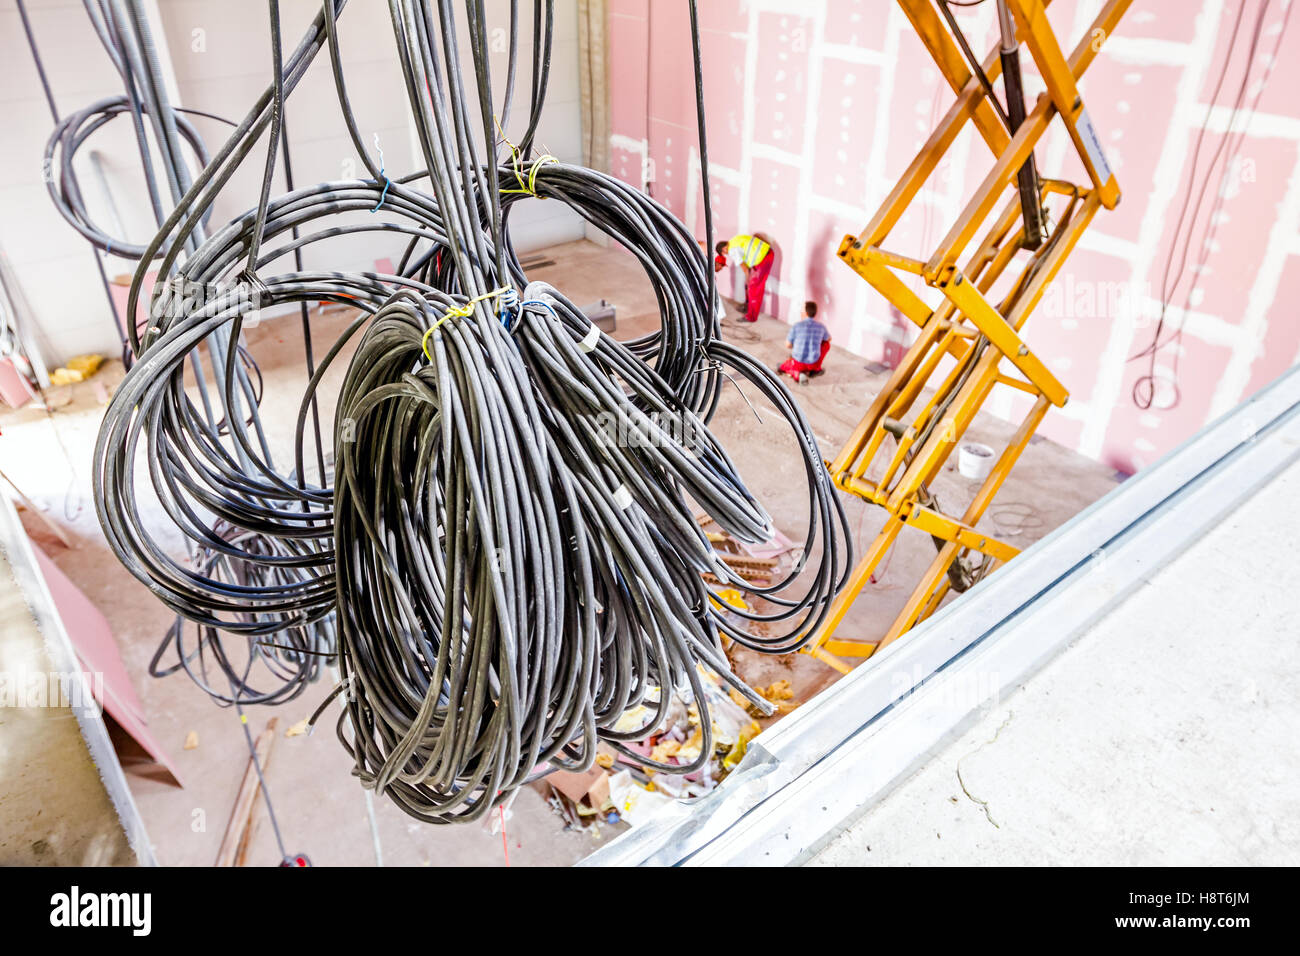 Hanging Cables Stock Photos & Hanging Cables Stock Images - Alamy